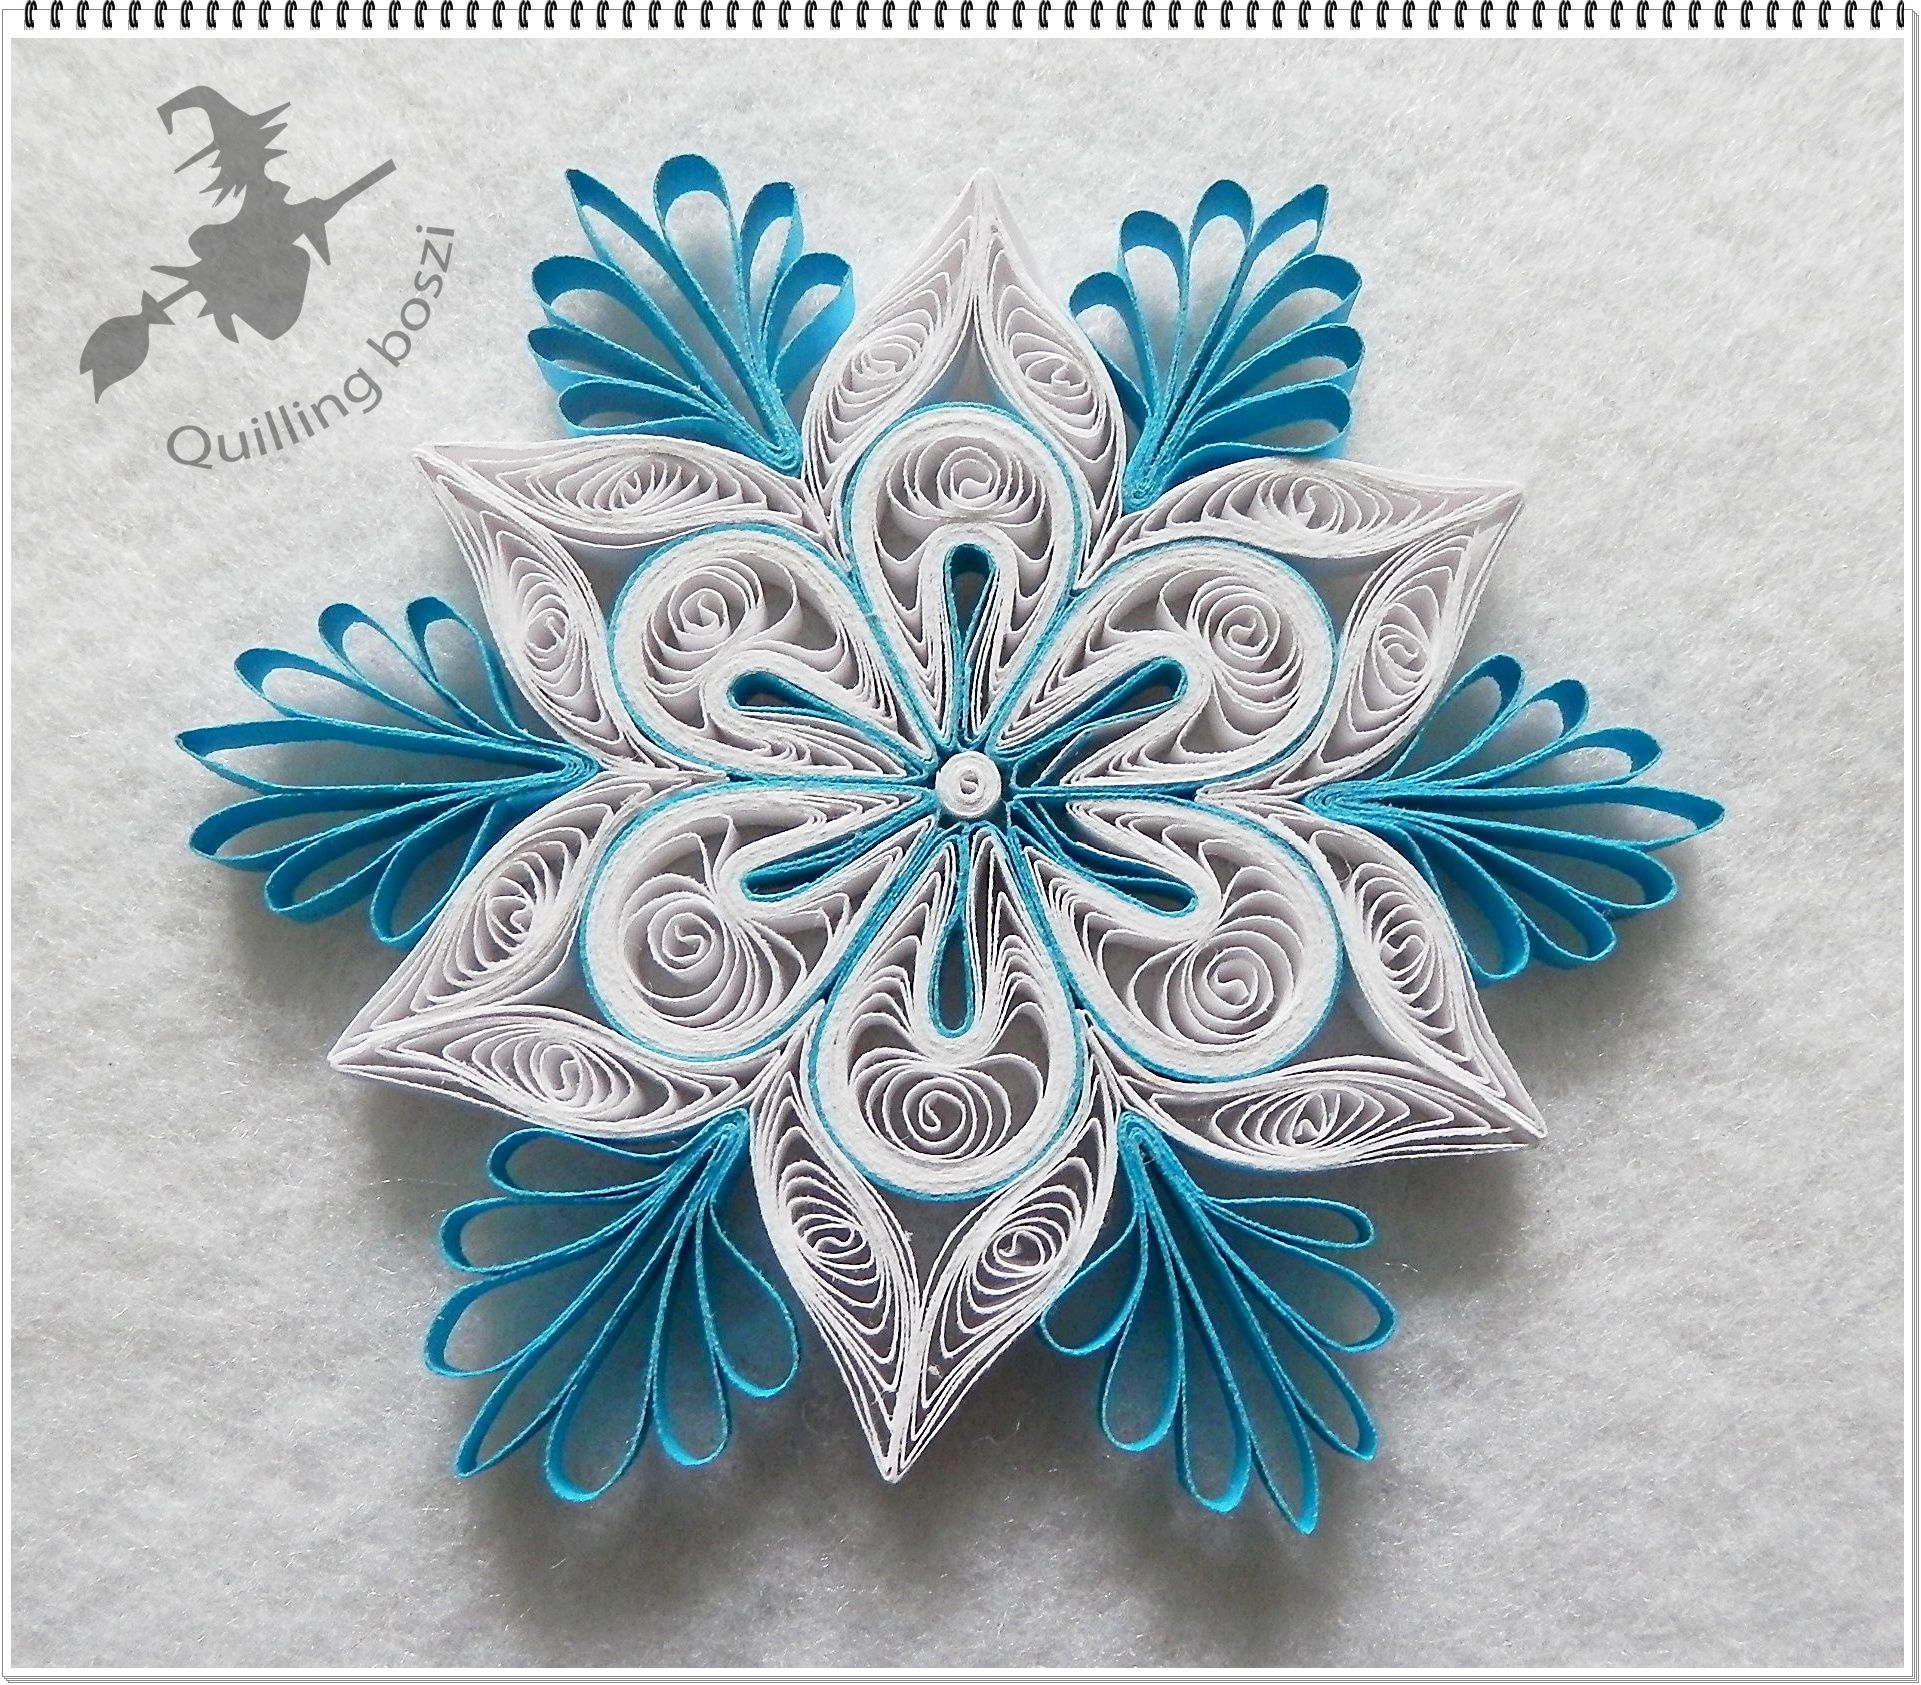 Kar csonyfa d sz quilling kar csony christmas tree for Simple paper quilling designs